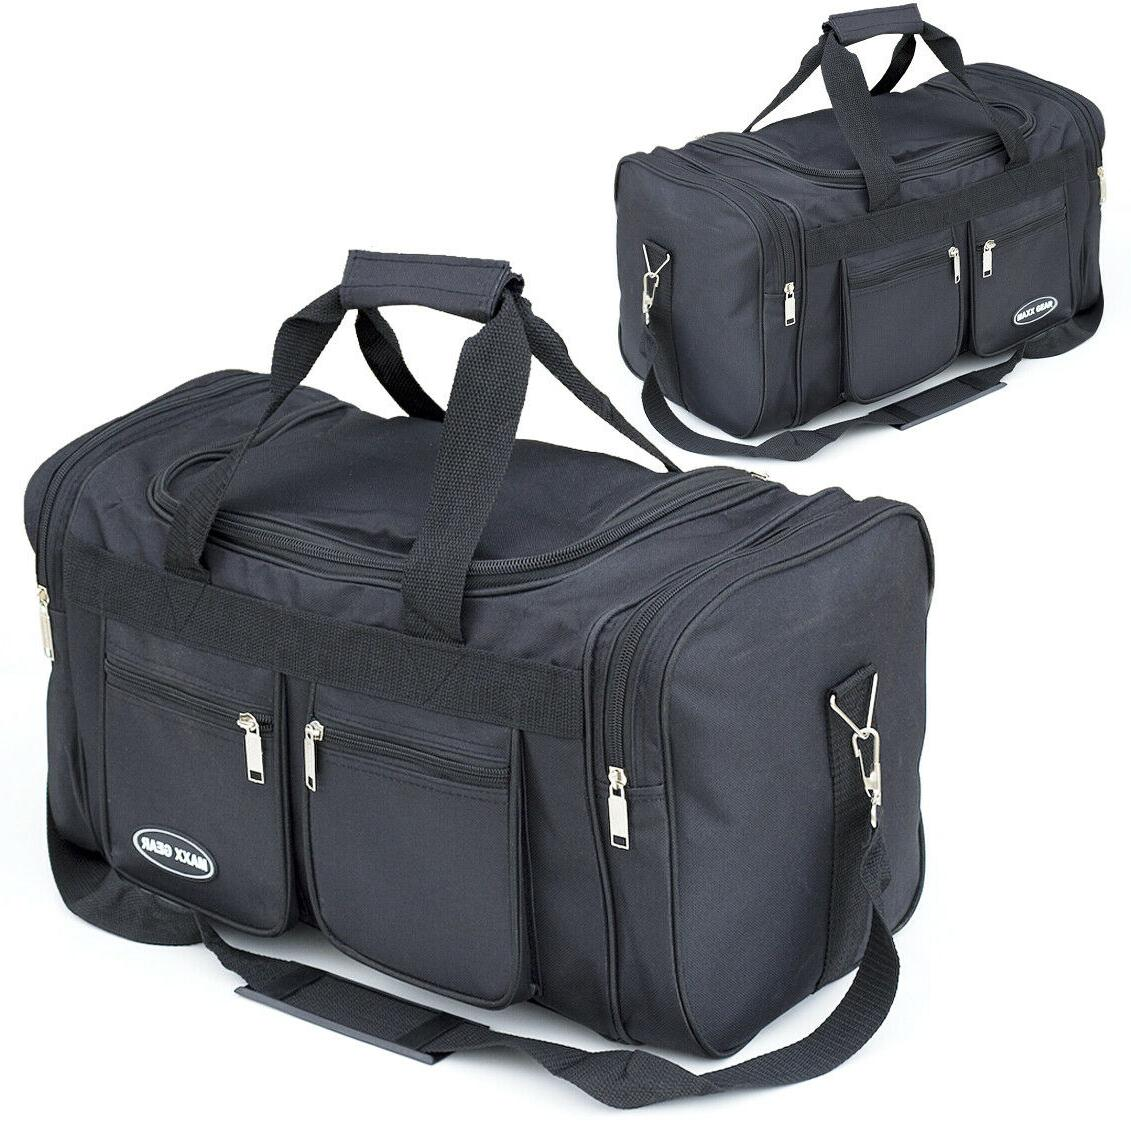 18 and 22 inch duffle bag black